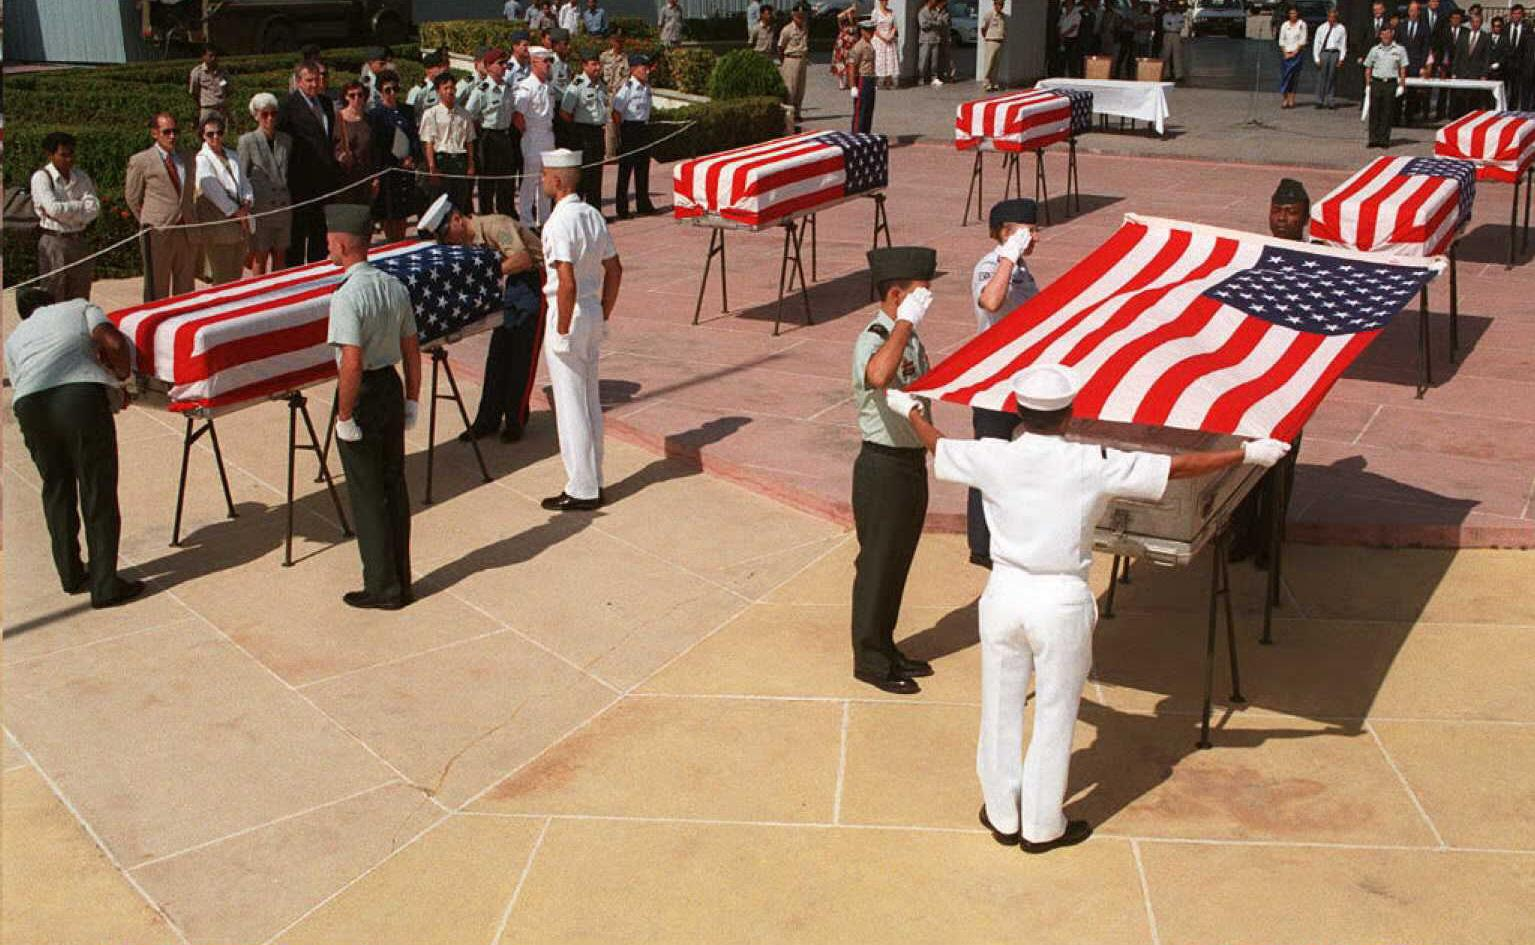 US Vietnam War vet's remains repatriated after 47 years